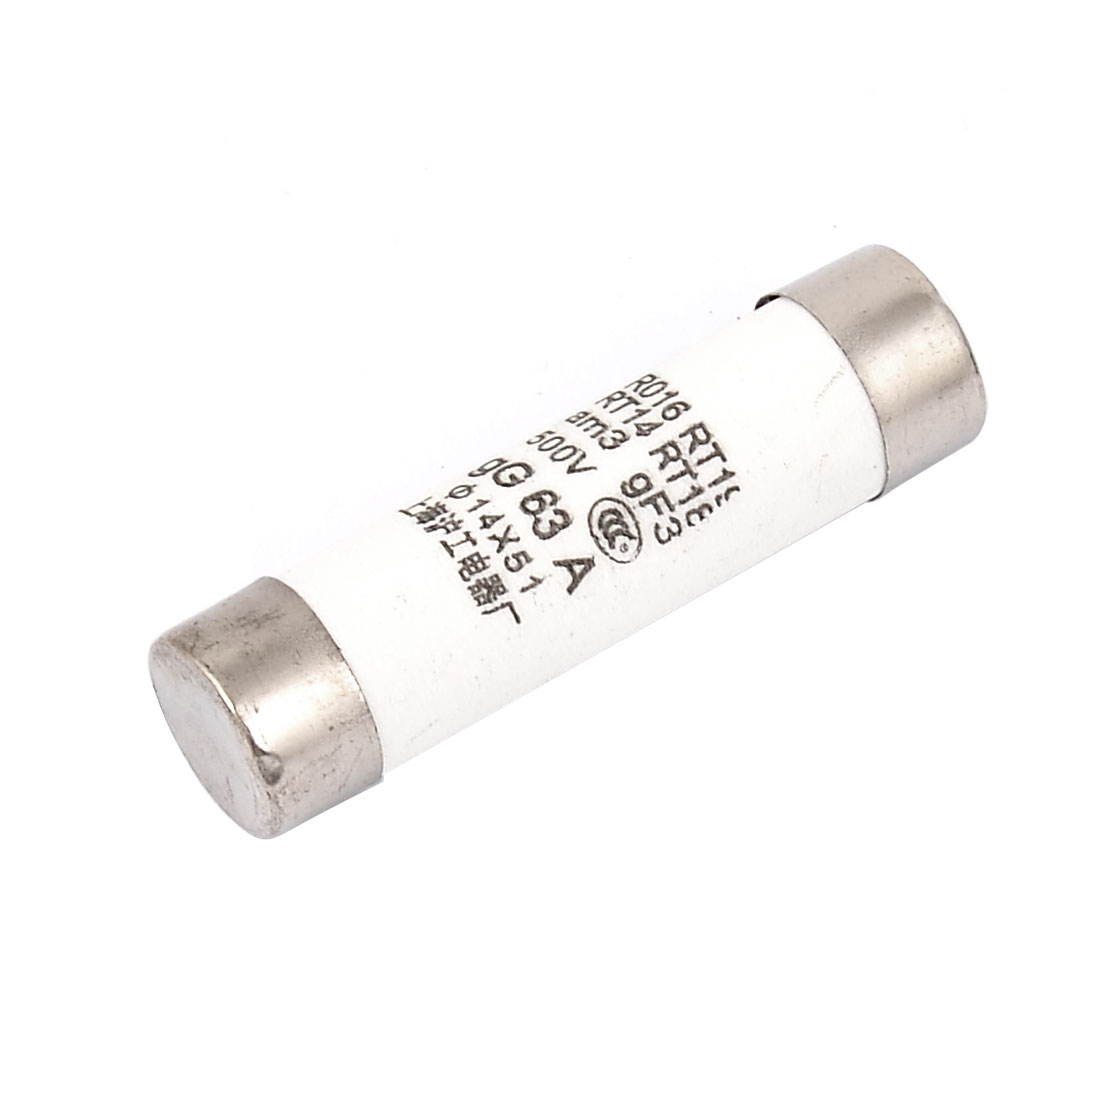 RO16 RT18 RT14 RT19 Ceramic Cylindrical Tube Fuse 63A 500V 14mmx51mm